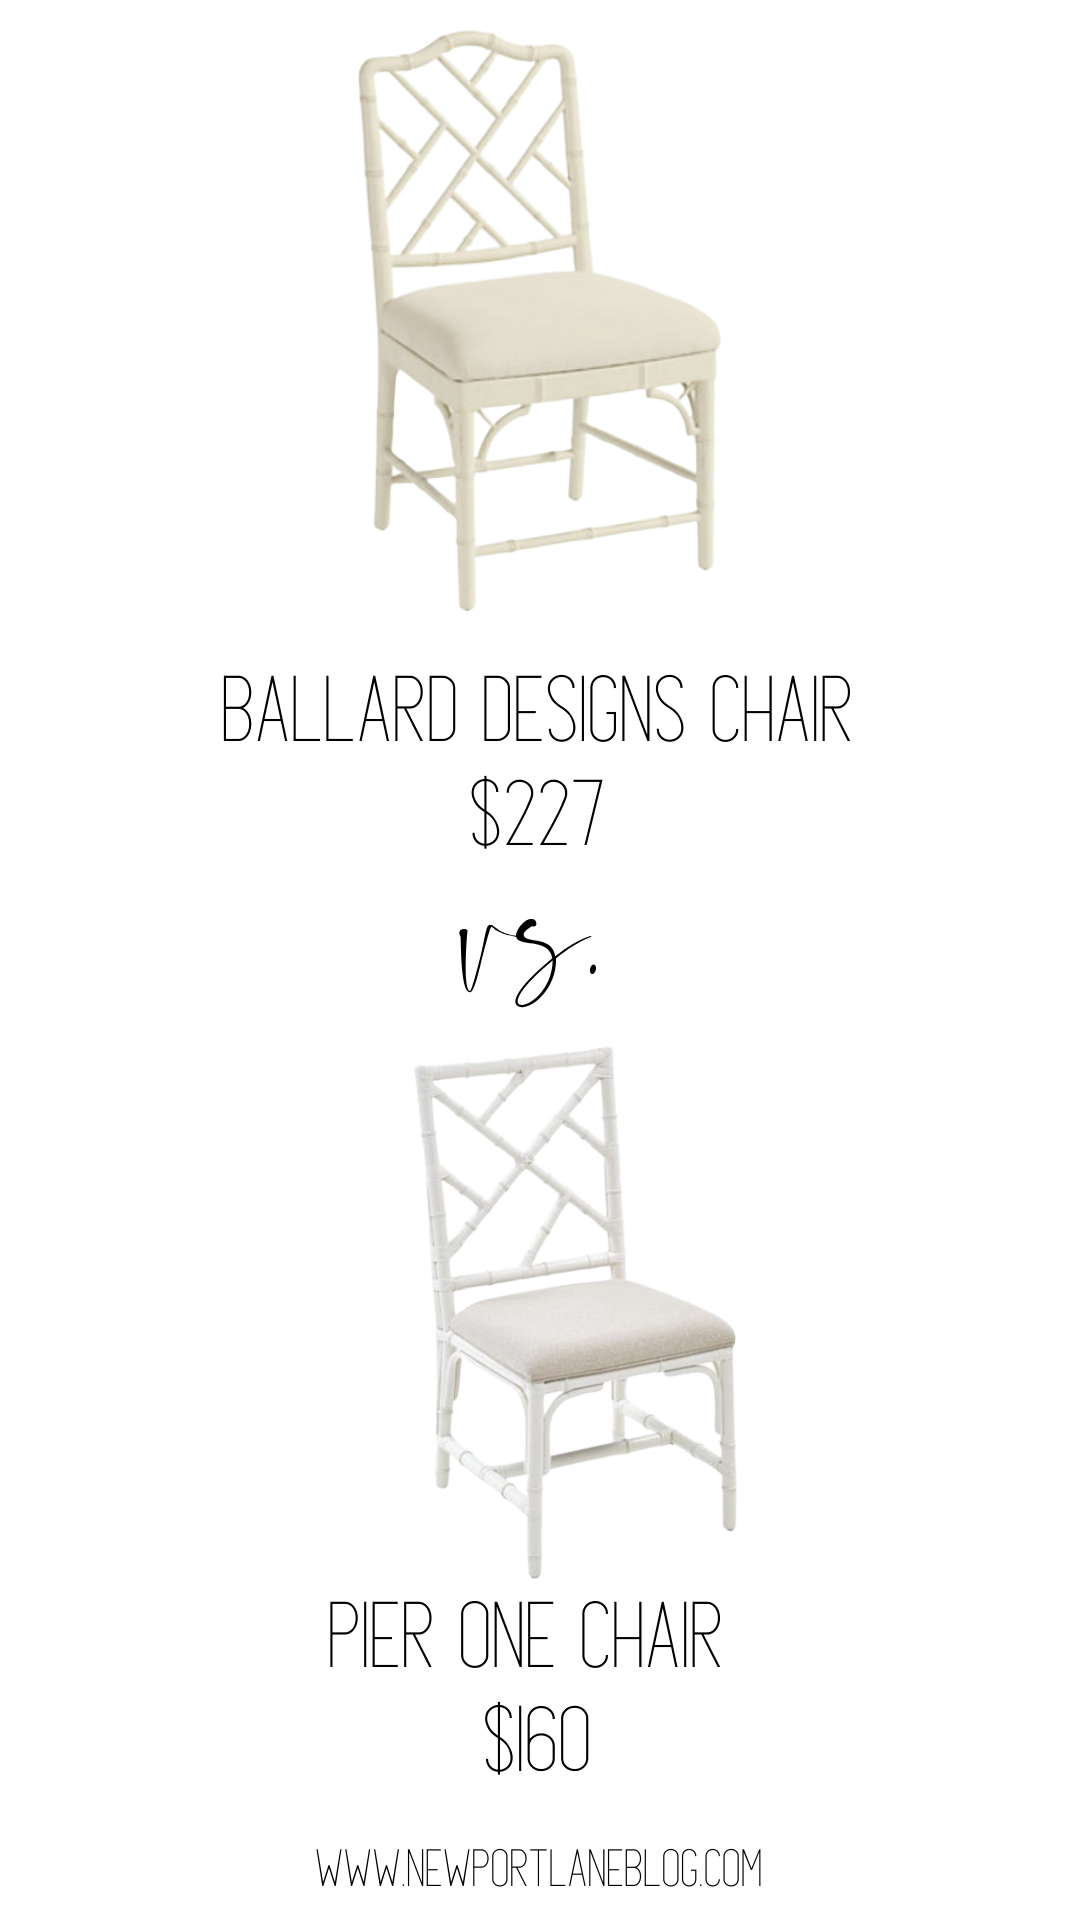 Prime Splurge Vs Save Dining Room Get The Look For Less On A Lamtechconsult Wood Chair Design Ideas Lamtechconsultcom